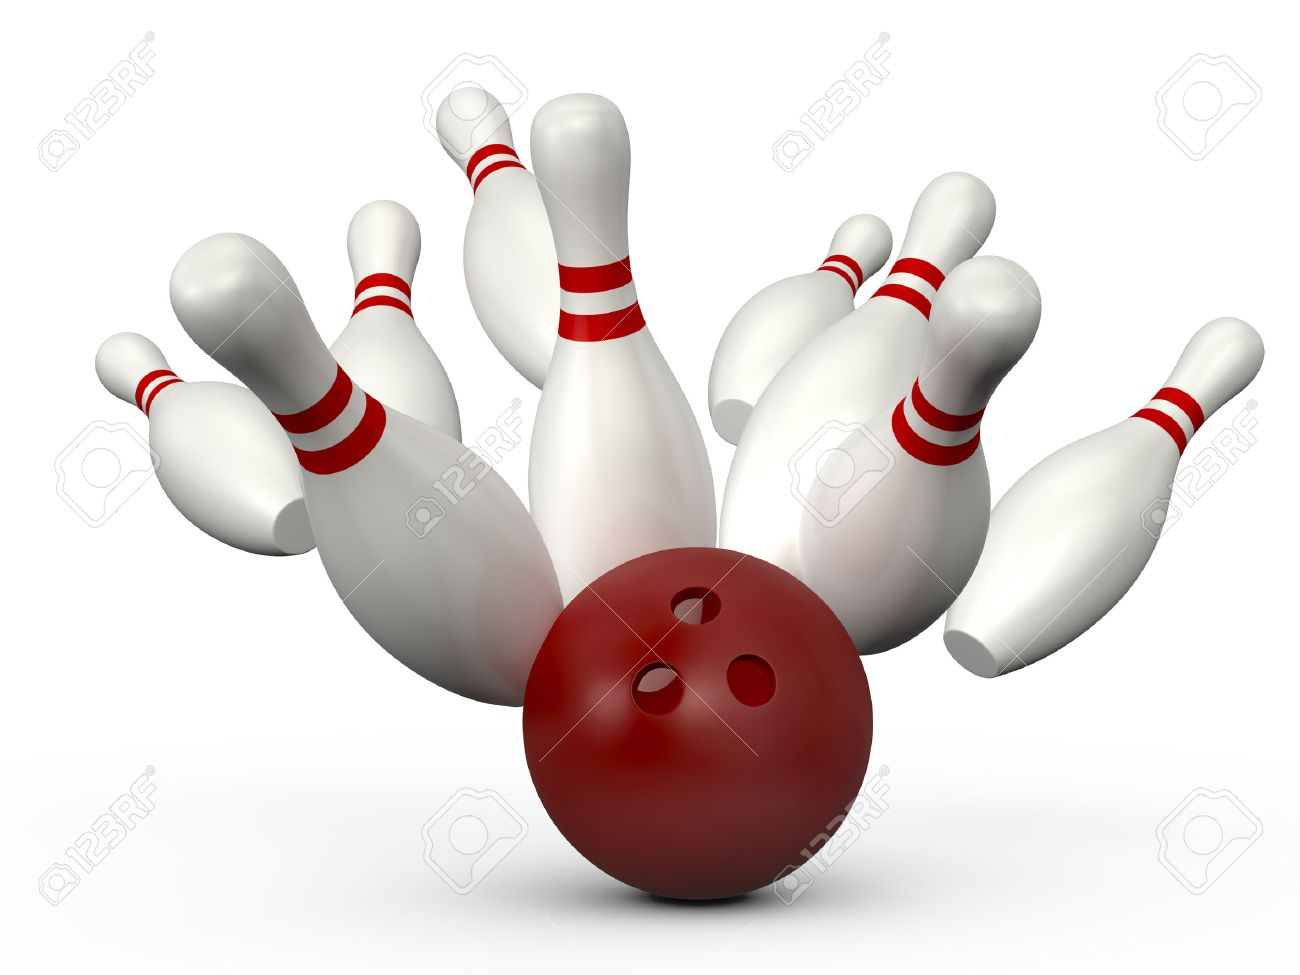 red bowling ball crashes